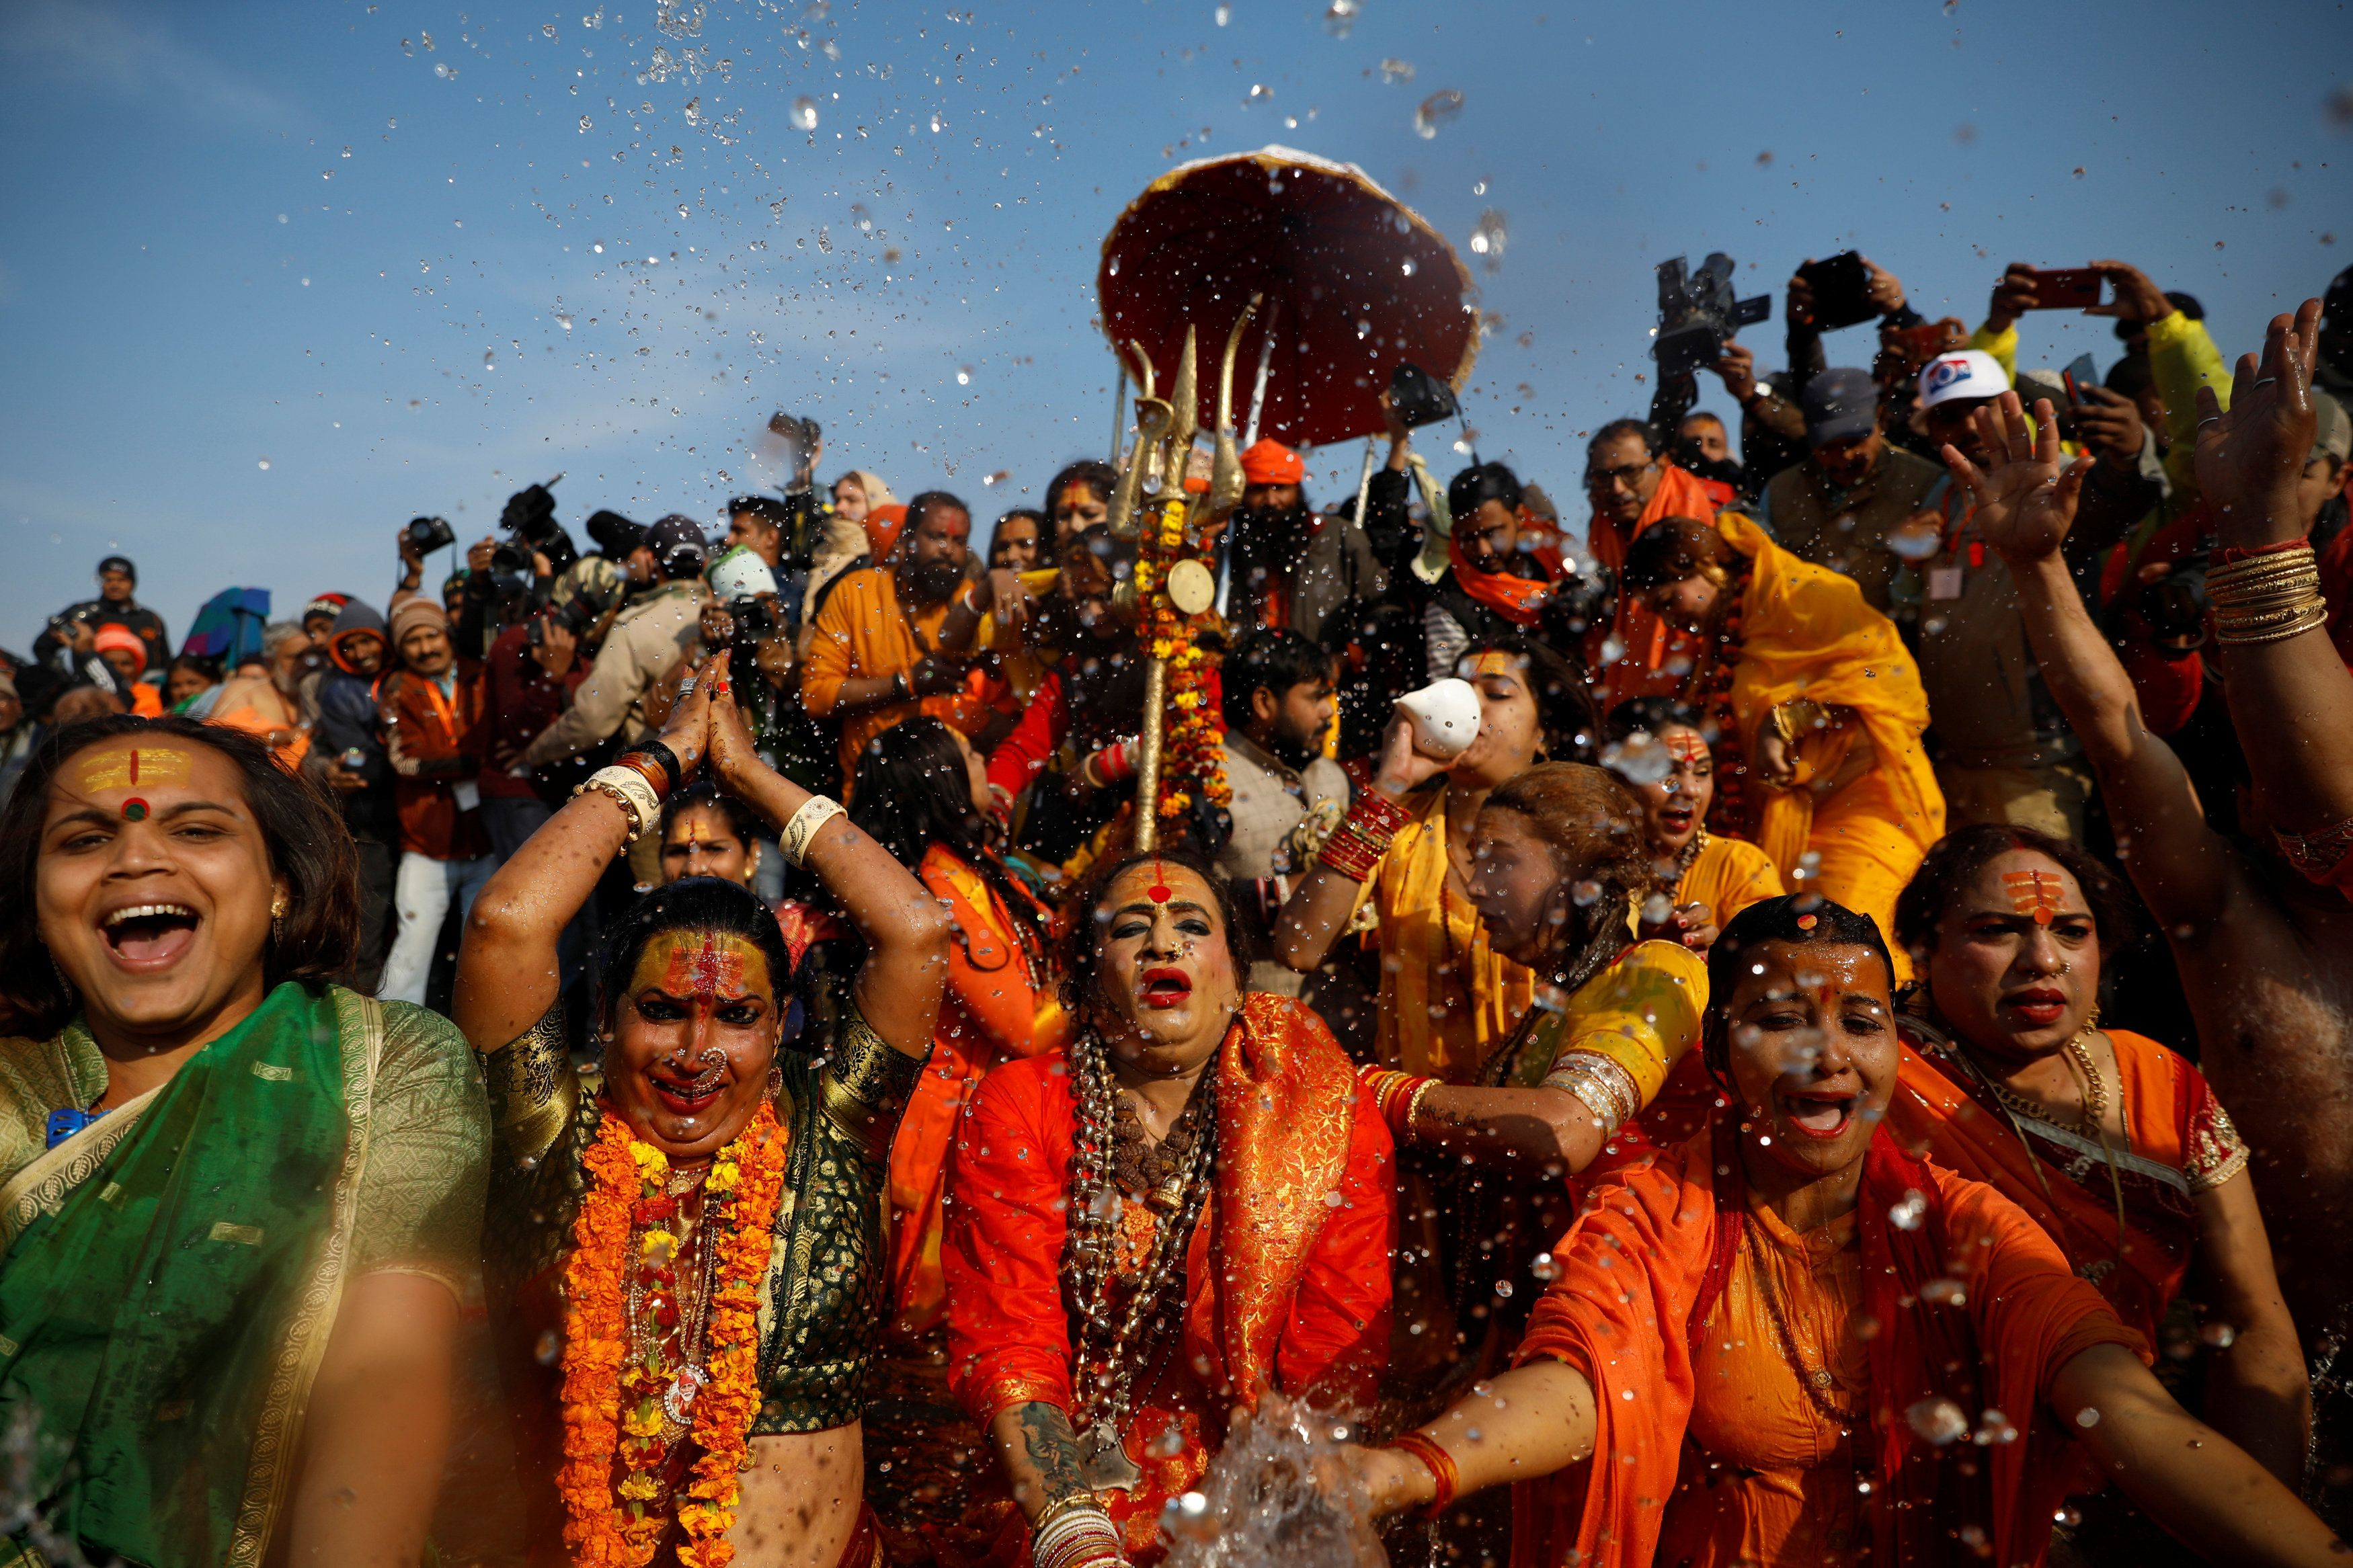 """Lakshmi Narayan Tripathi (C), chief of the """"Kinnar Akhada"""" congregation for transgender people and other members take a dip during the first """"Shahi Snan"""" (grand bath) at """"Kumbh Mela"""" or the Pitcher Festival, in Prayagraj, previously known as Allahabad, India, January 15, 2019. REUTERS/Danish Siddiqui"""